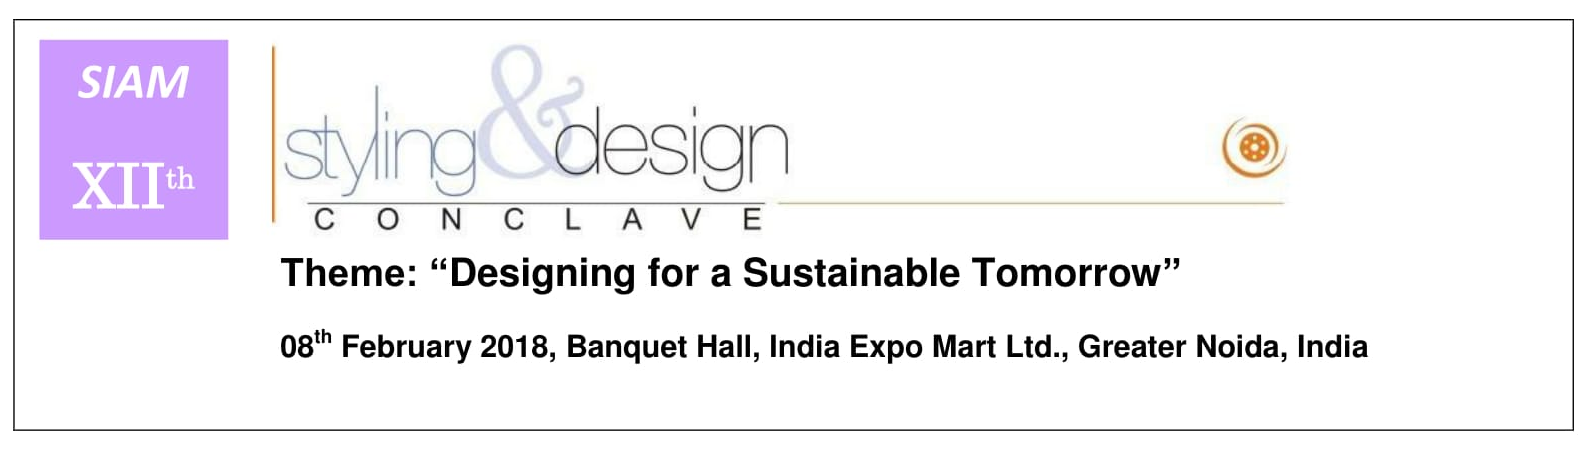 12th SIAM Styling & Design Conclave 2018